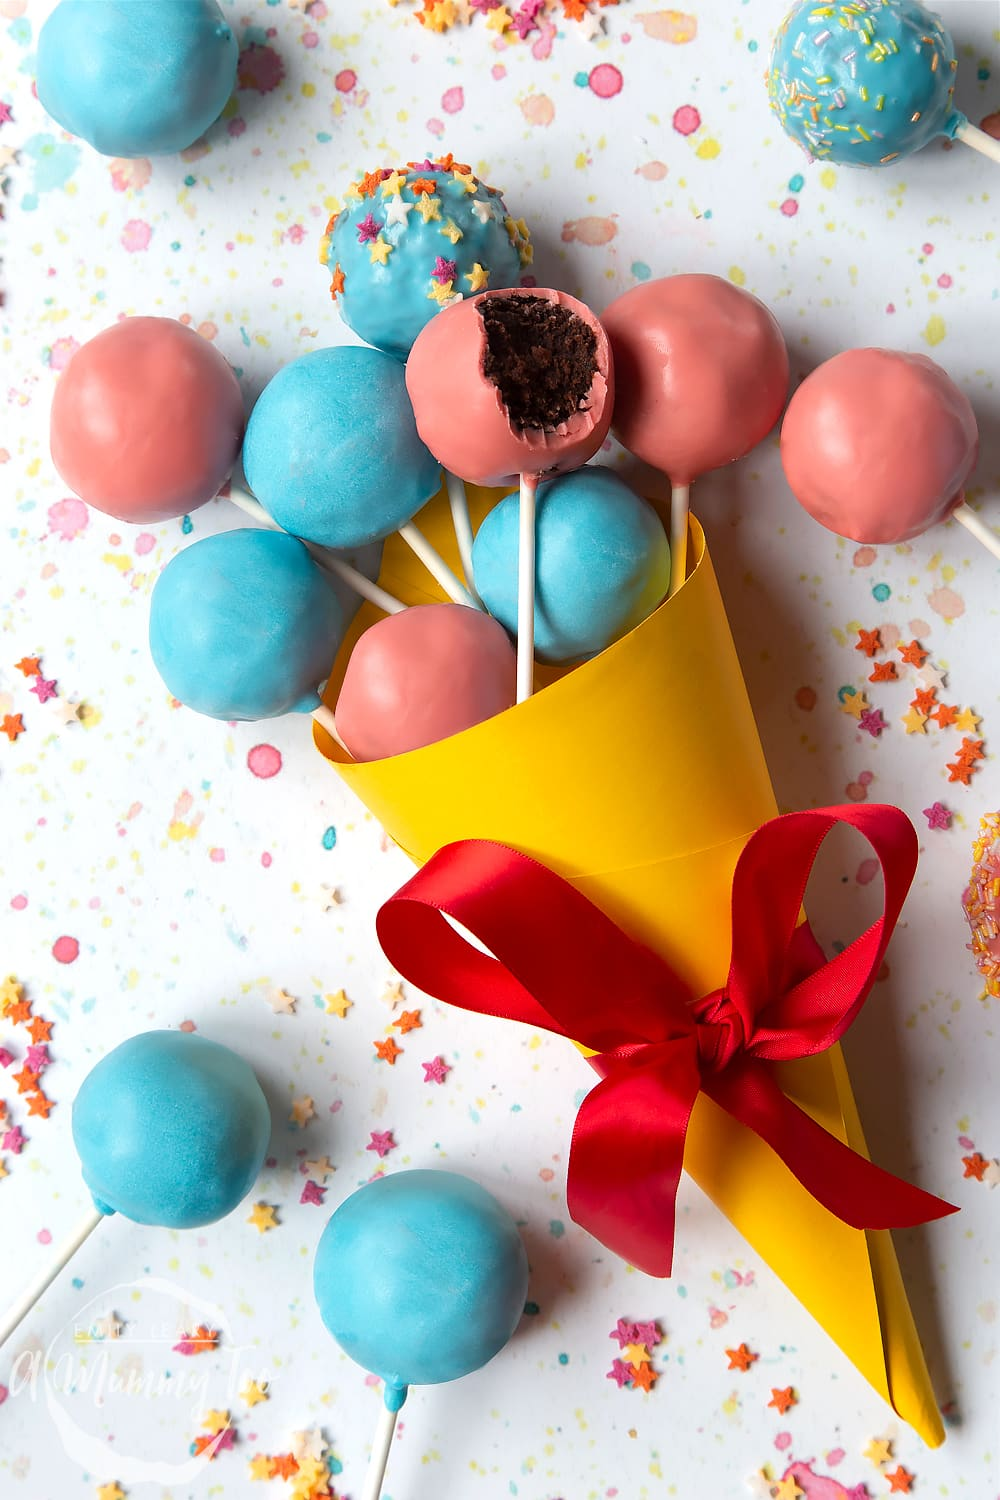 A cake pop bouquet surrounded by other cake pops. The bouquet is made from several blue and pink cake pops, gathered together and wrapped in a yellow paper cone with a red ribbon.